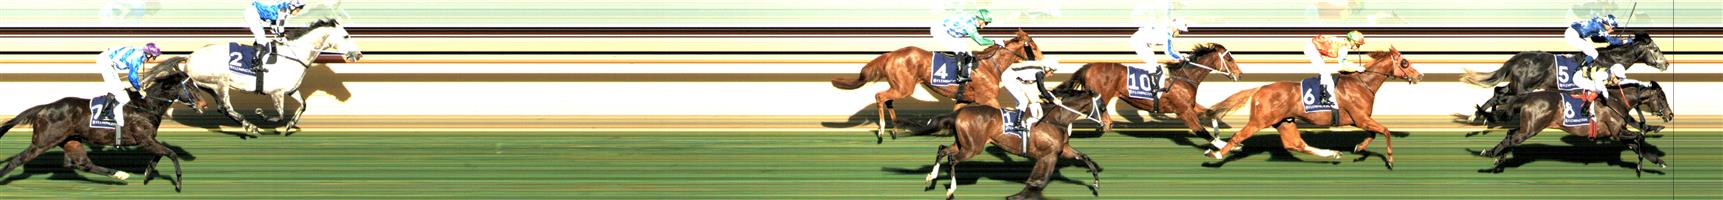 🏆🏆🏆🏆FLEMINGTON Race 4 No. 8 Future Score   Result : 1st at SP $2.70, Best Tote $2.80, Betfair $2.88. Settled towards the tail of the field and in the straight took inside runs and finally found clean air with about 200m to go which it took and burst through to score narrowly. Outcome +4.05 Units.